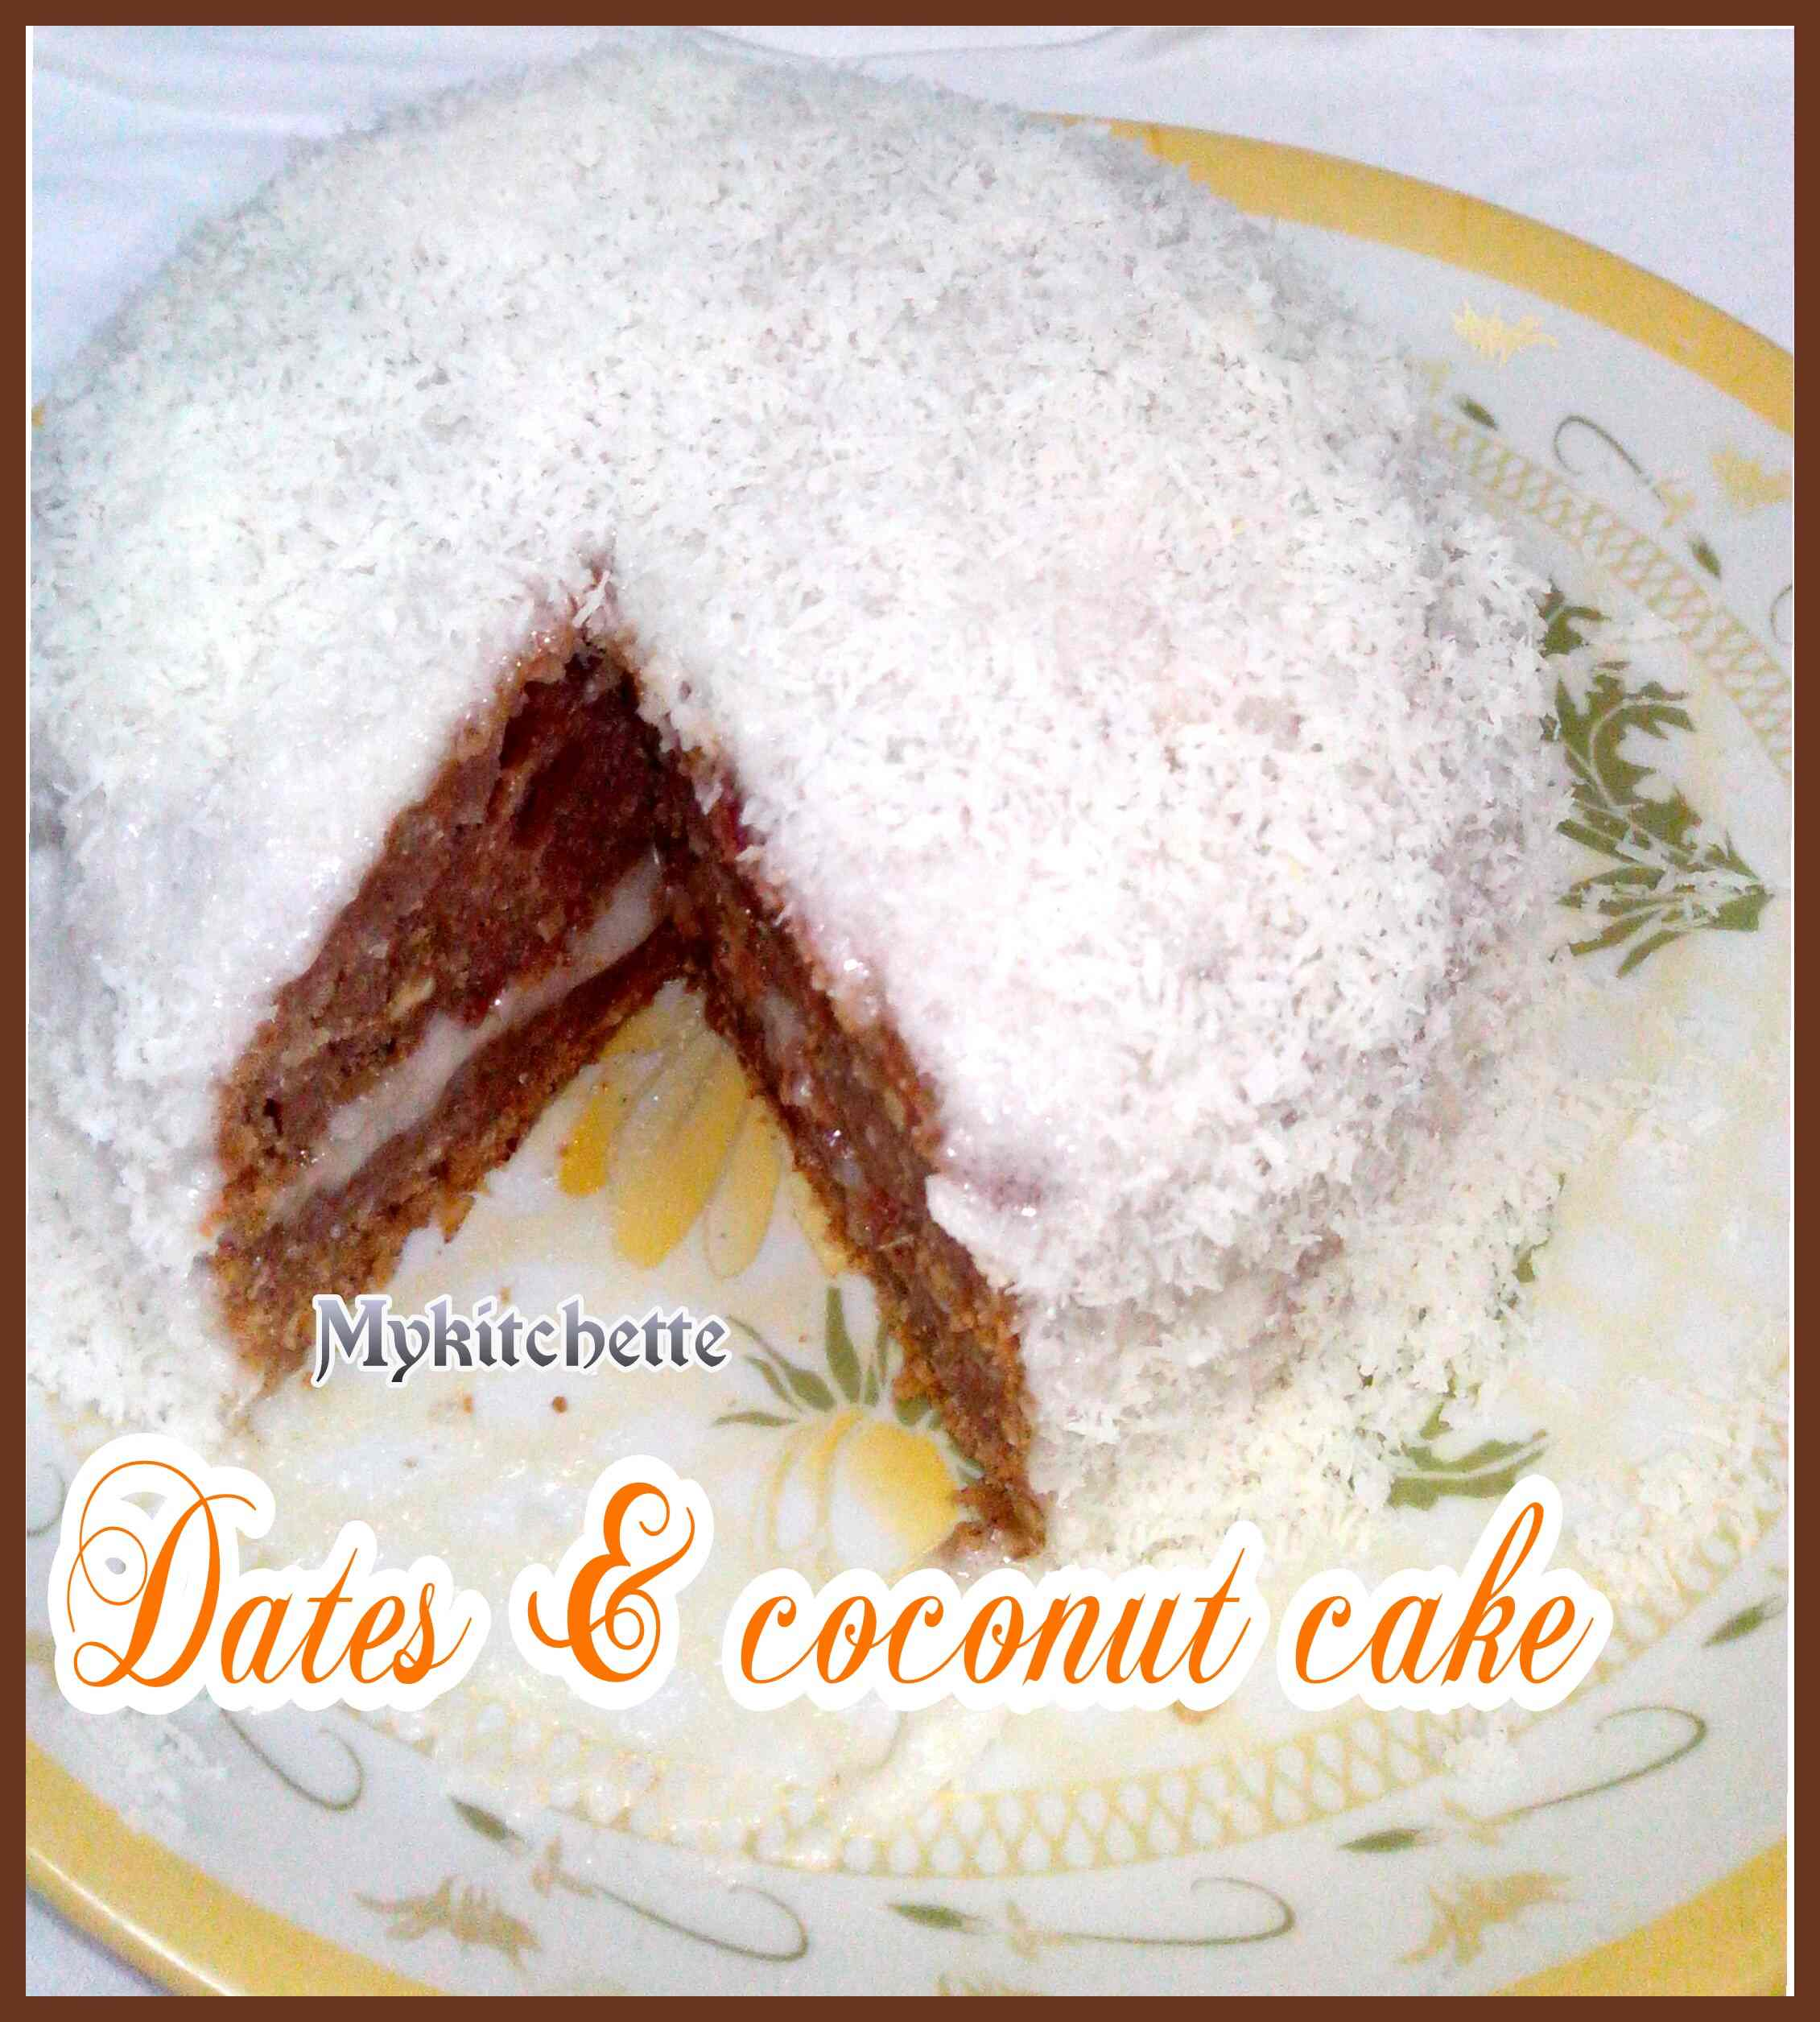 Date And Coconut Cake My Kitchette